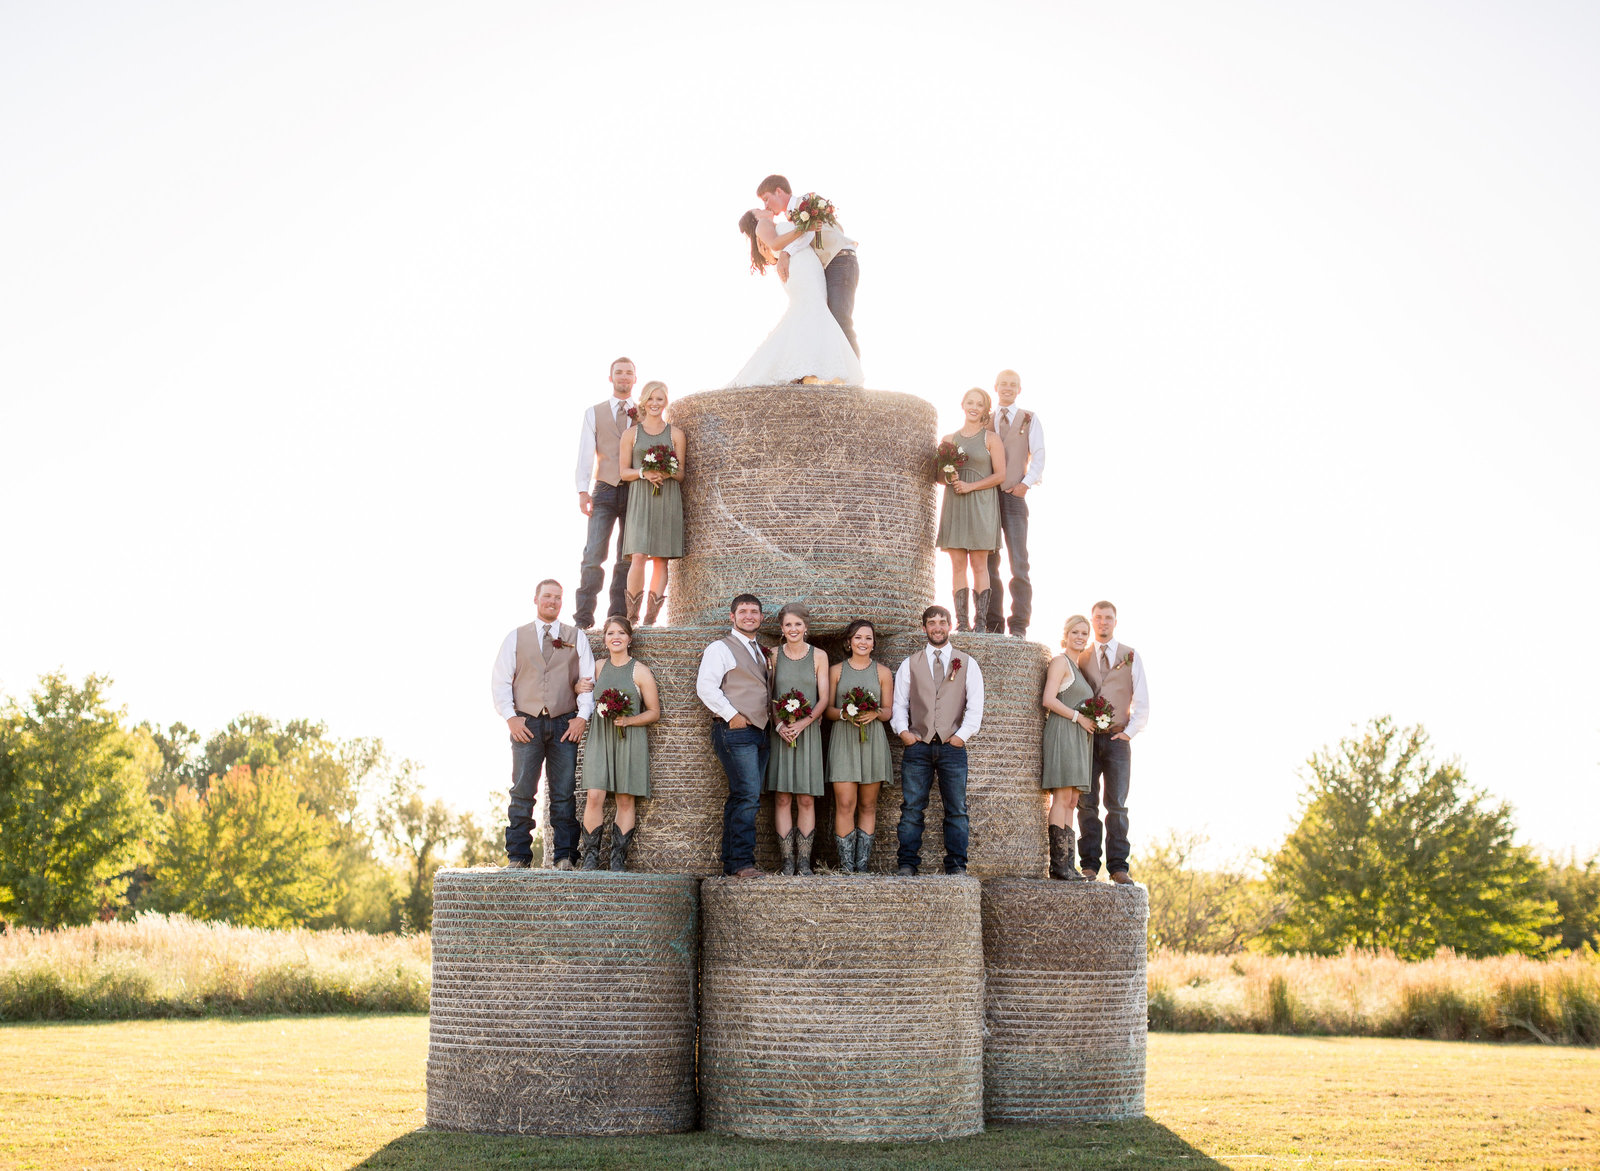 Kelsey&Colby-wedding-659